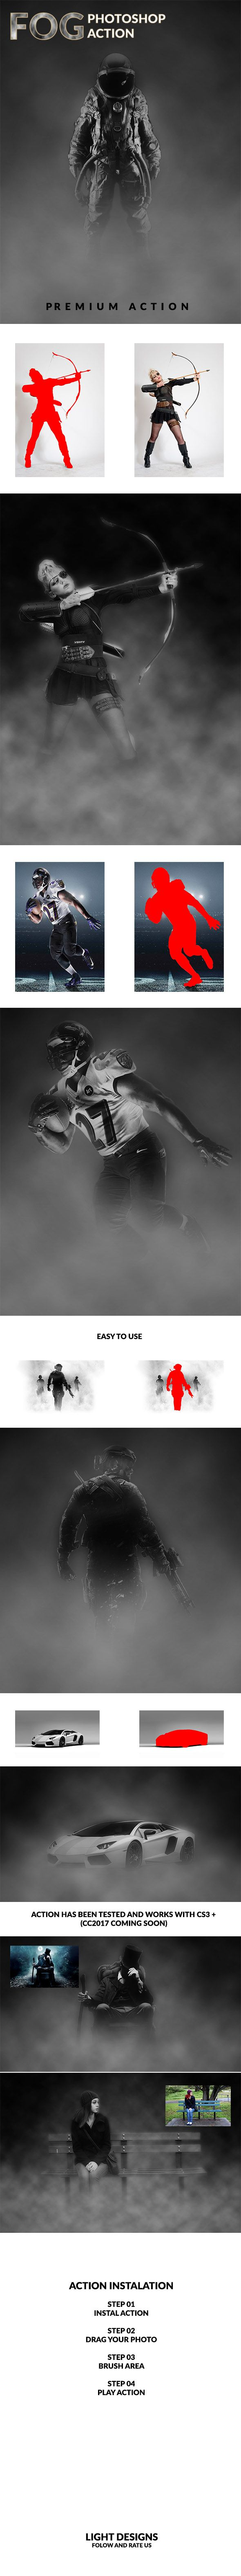 Fog  Photoshop Action — Photoshop ATN #effect smoke #sand • Download ➝ https://graphicriver.net/item/fog-photoshop-action/20368362?ref=pxcr